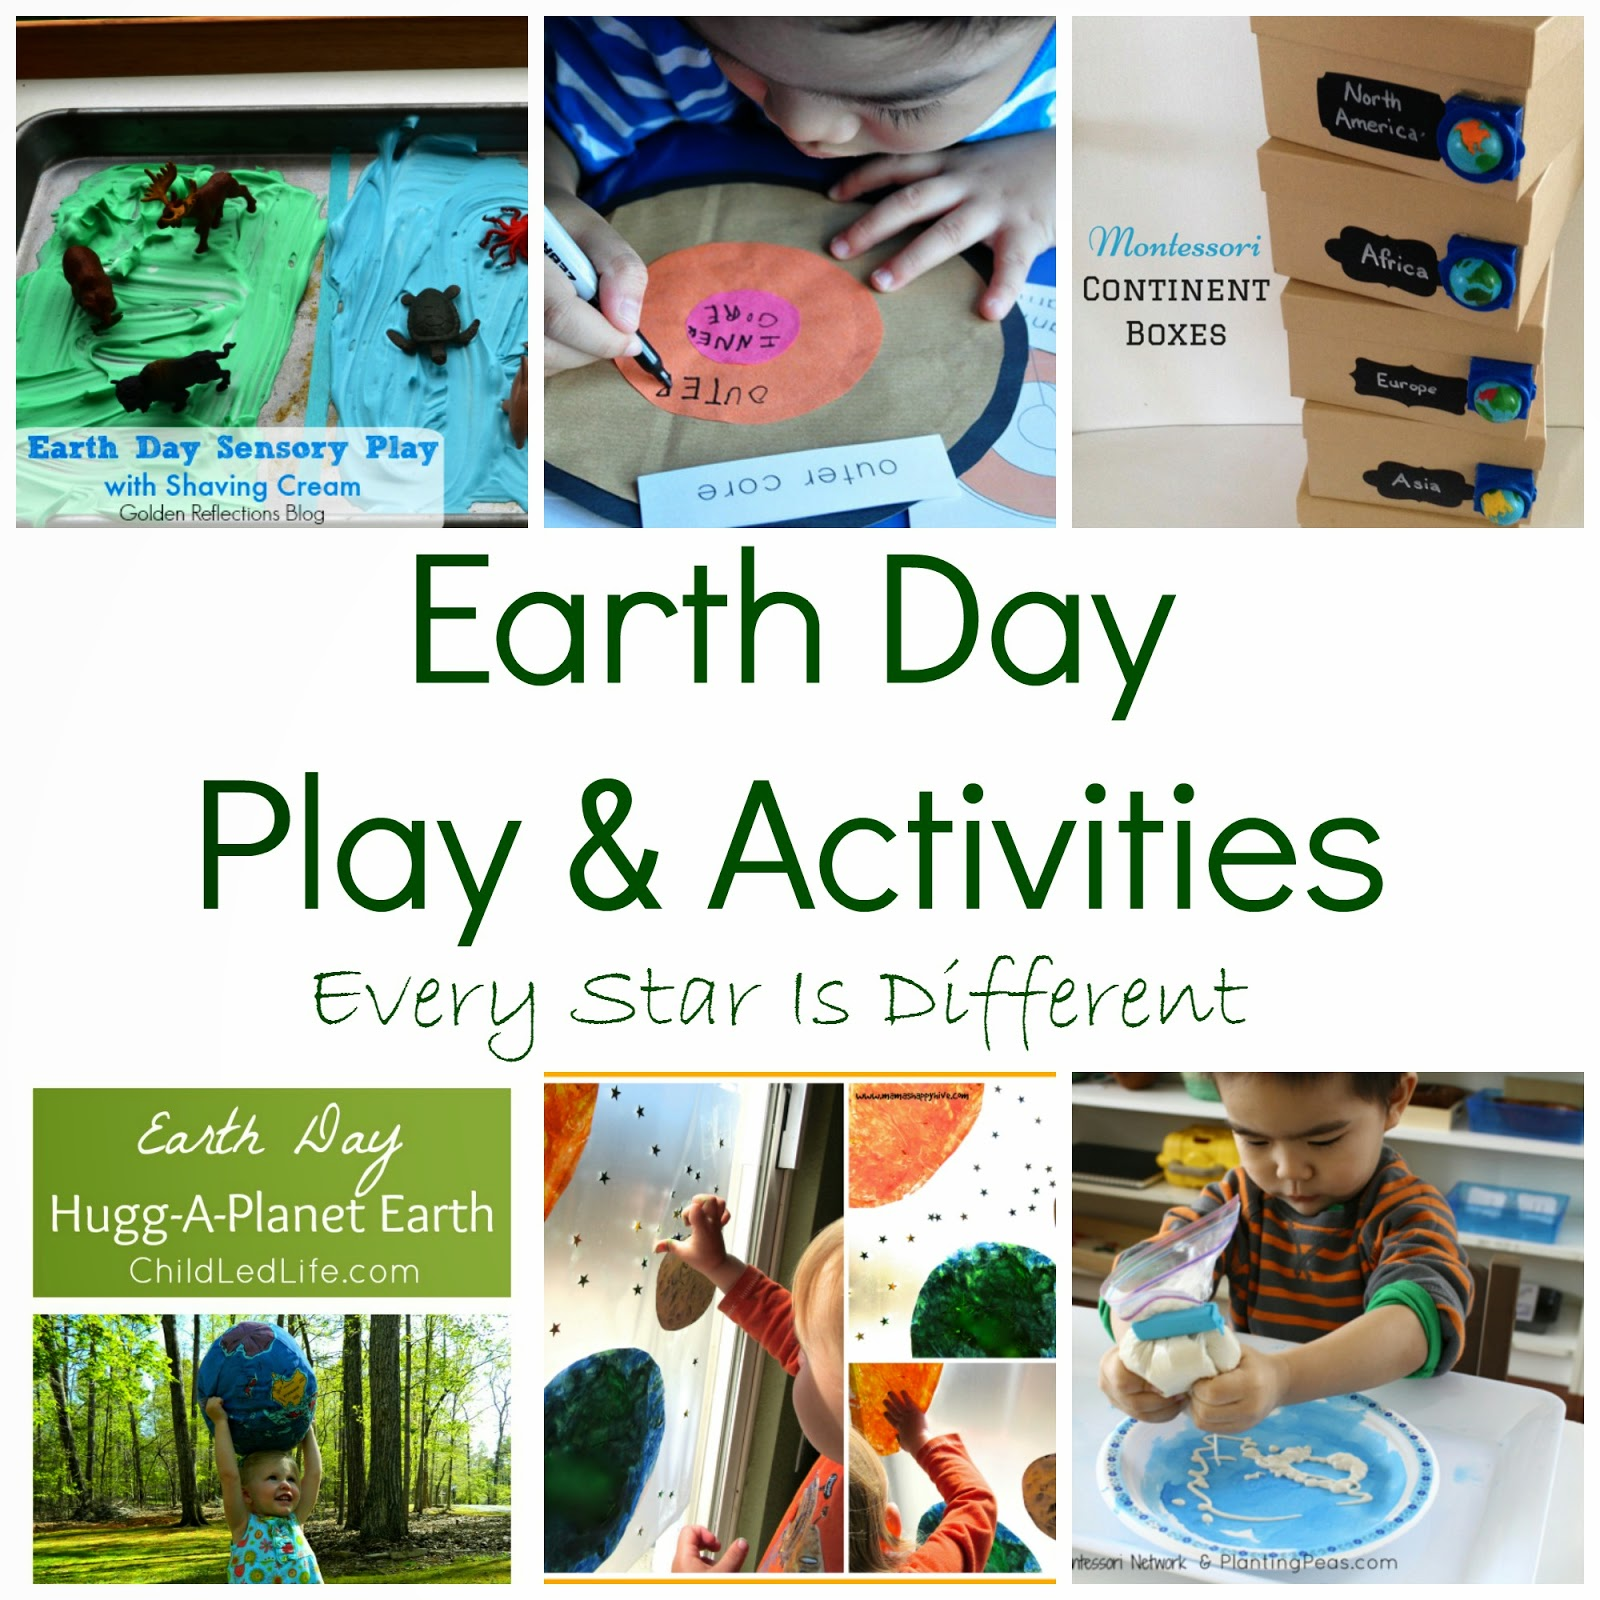 Earth Day Vegetable Garden Unit With Free Printables